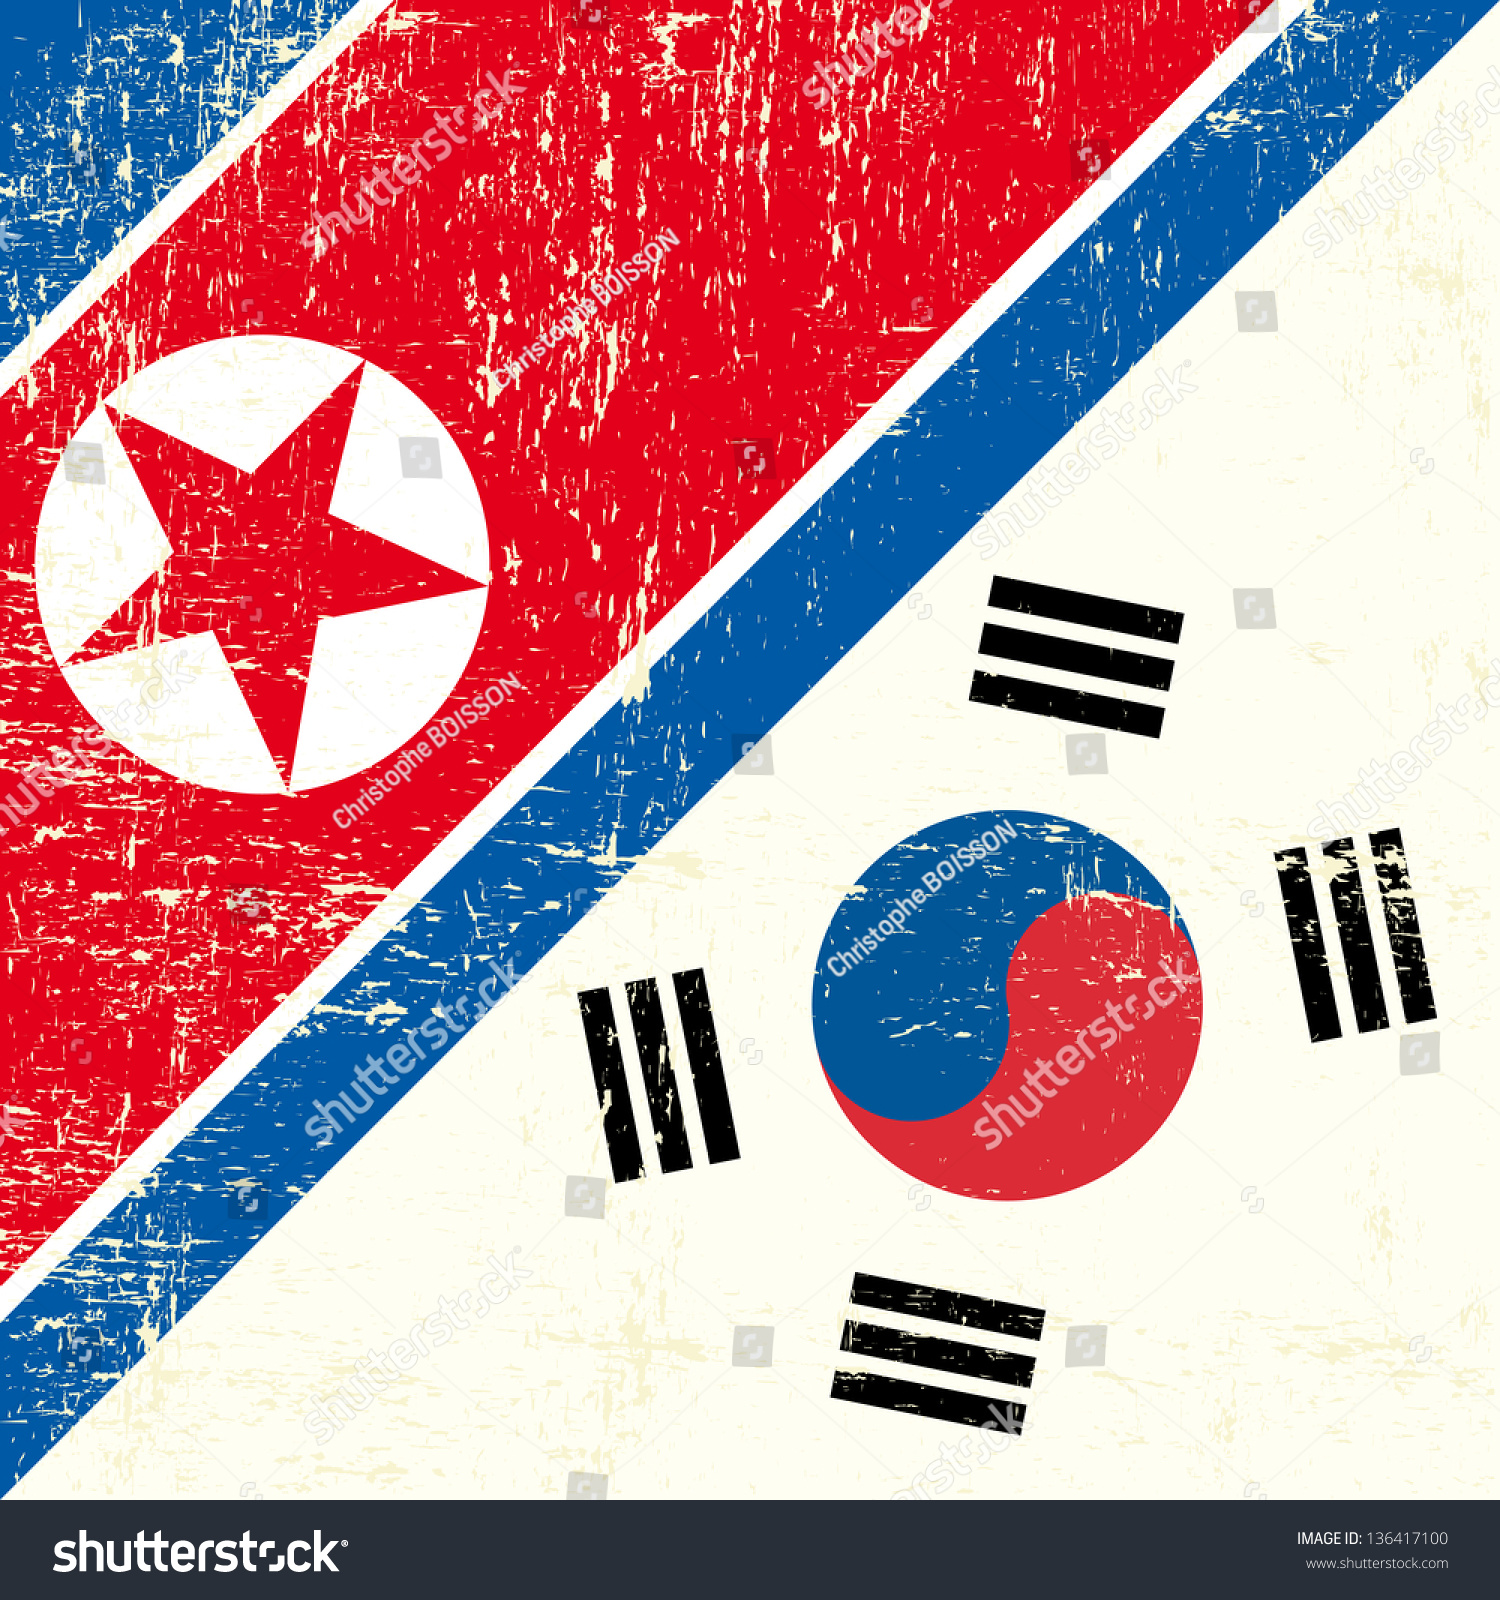 the relationship between north and south korea